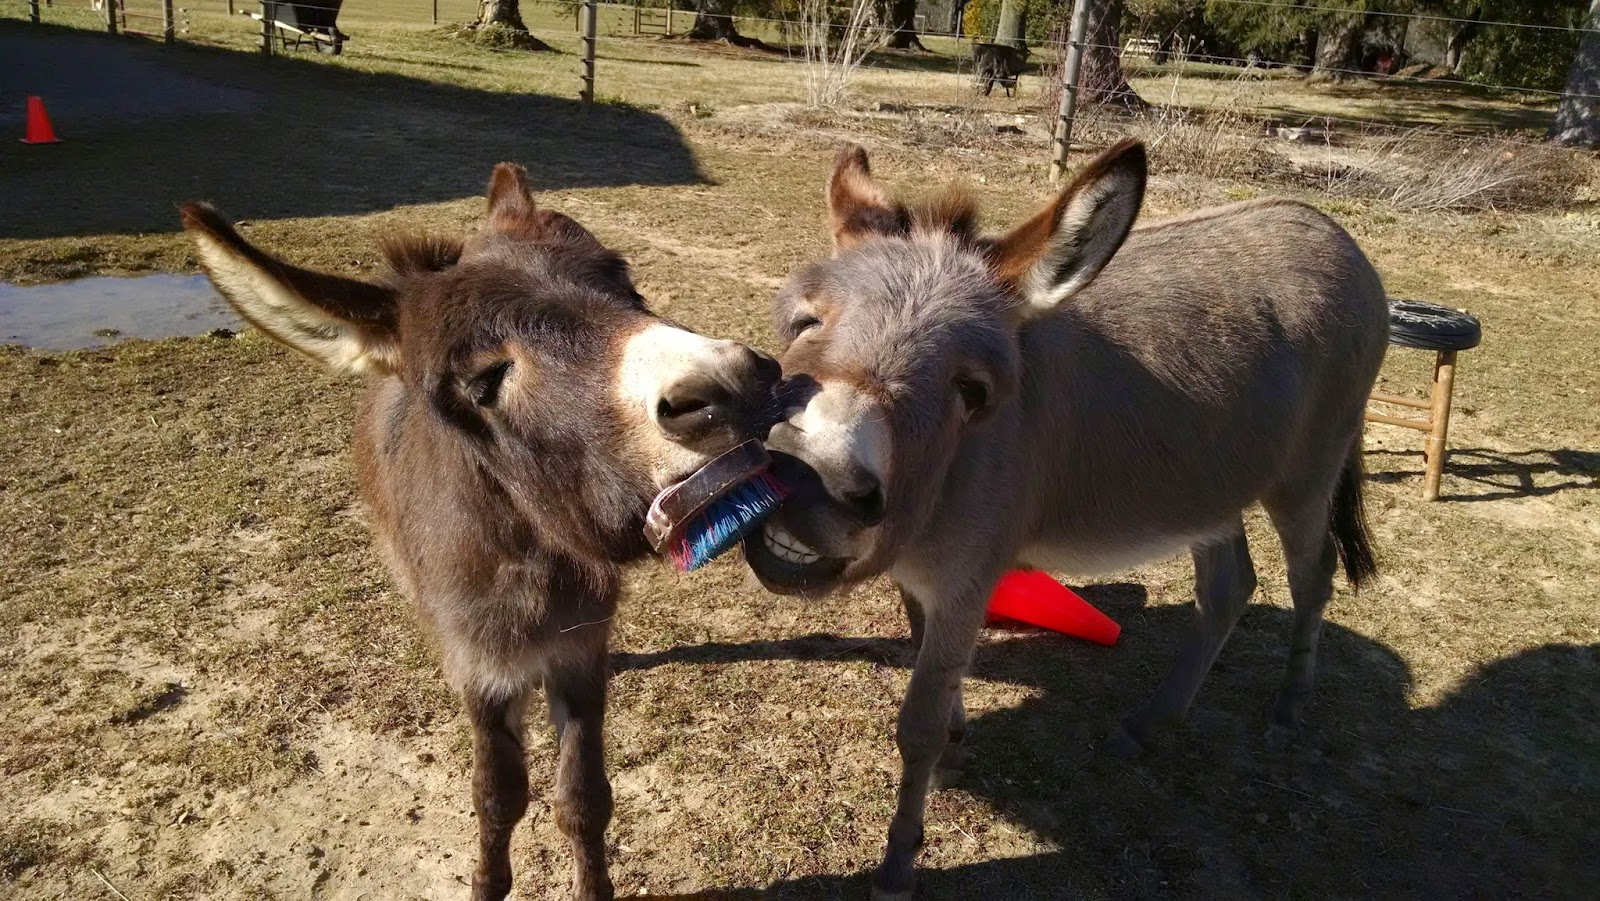 two miniature donkeys with brush in their mouth